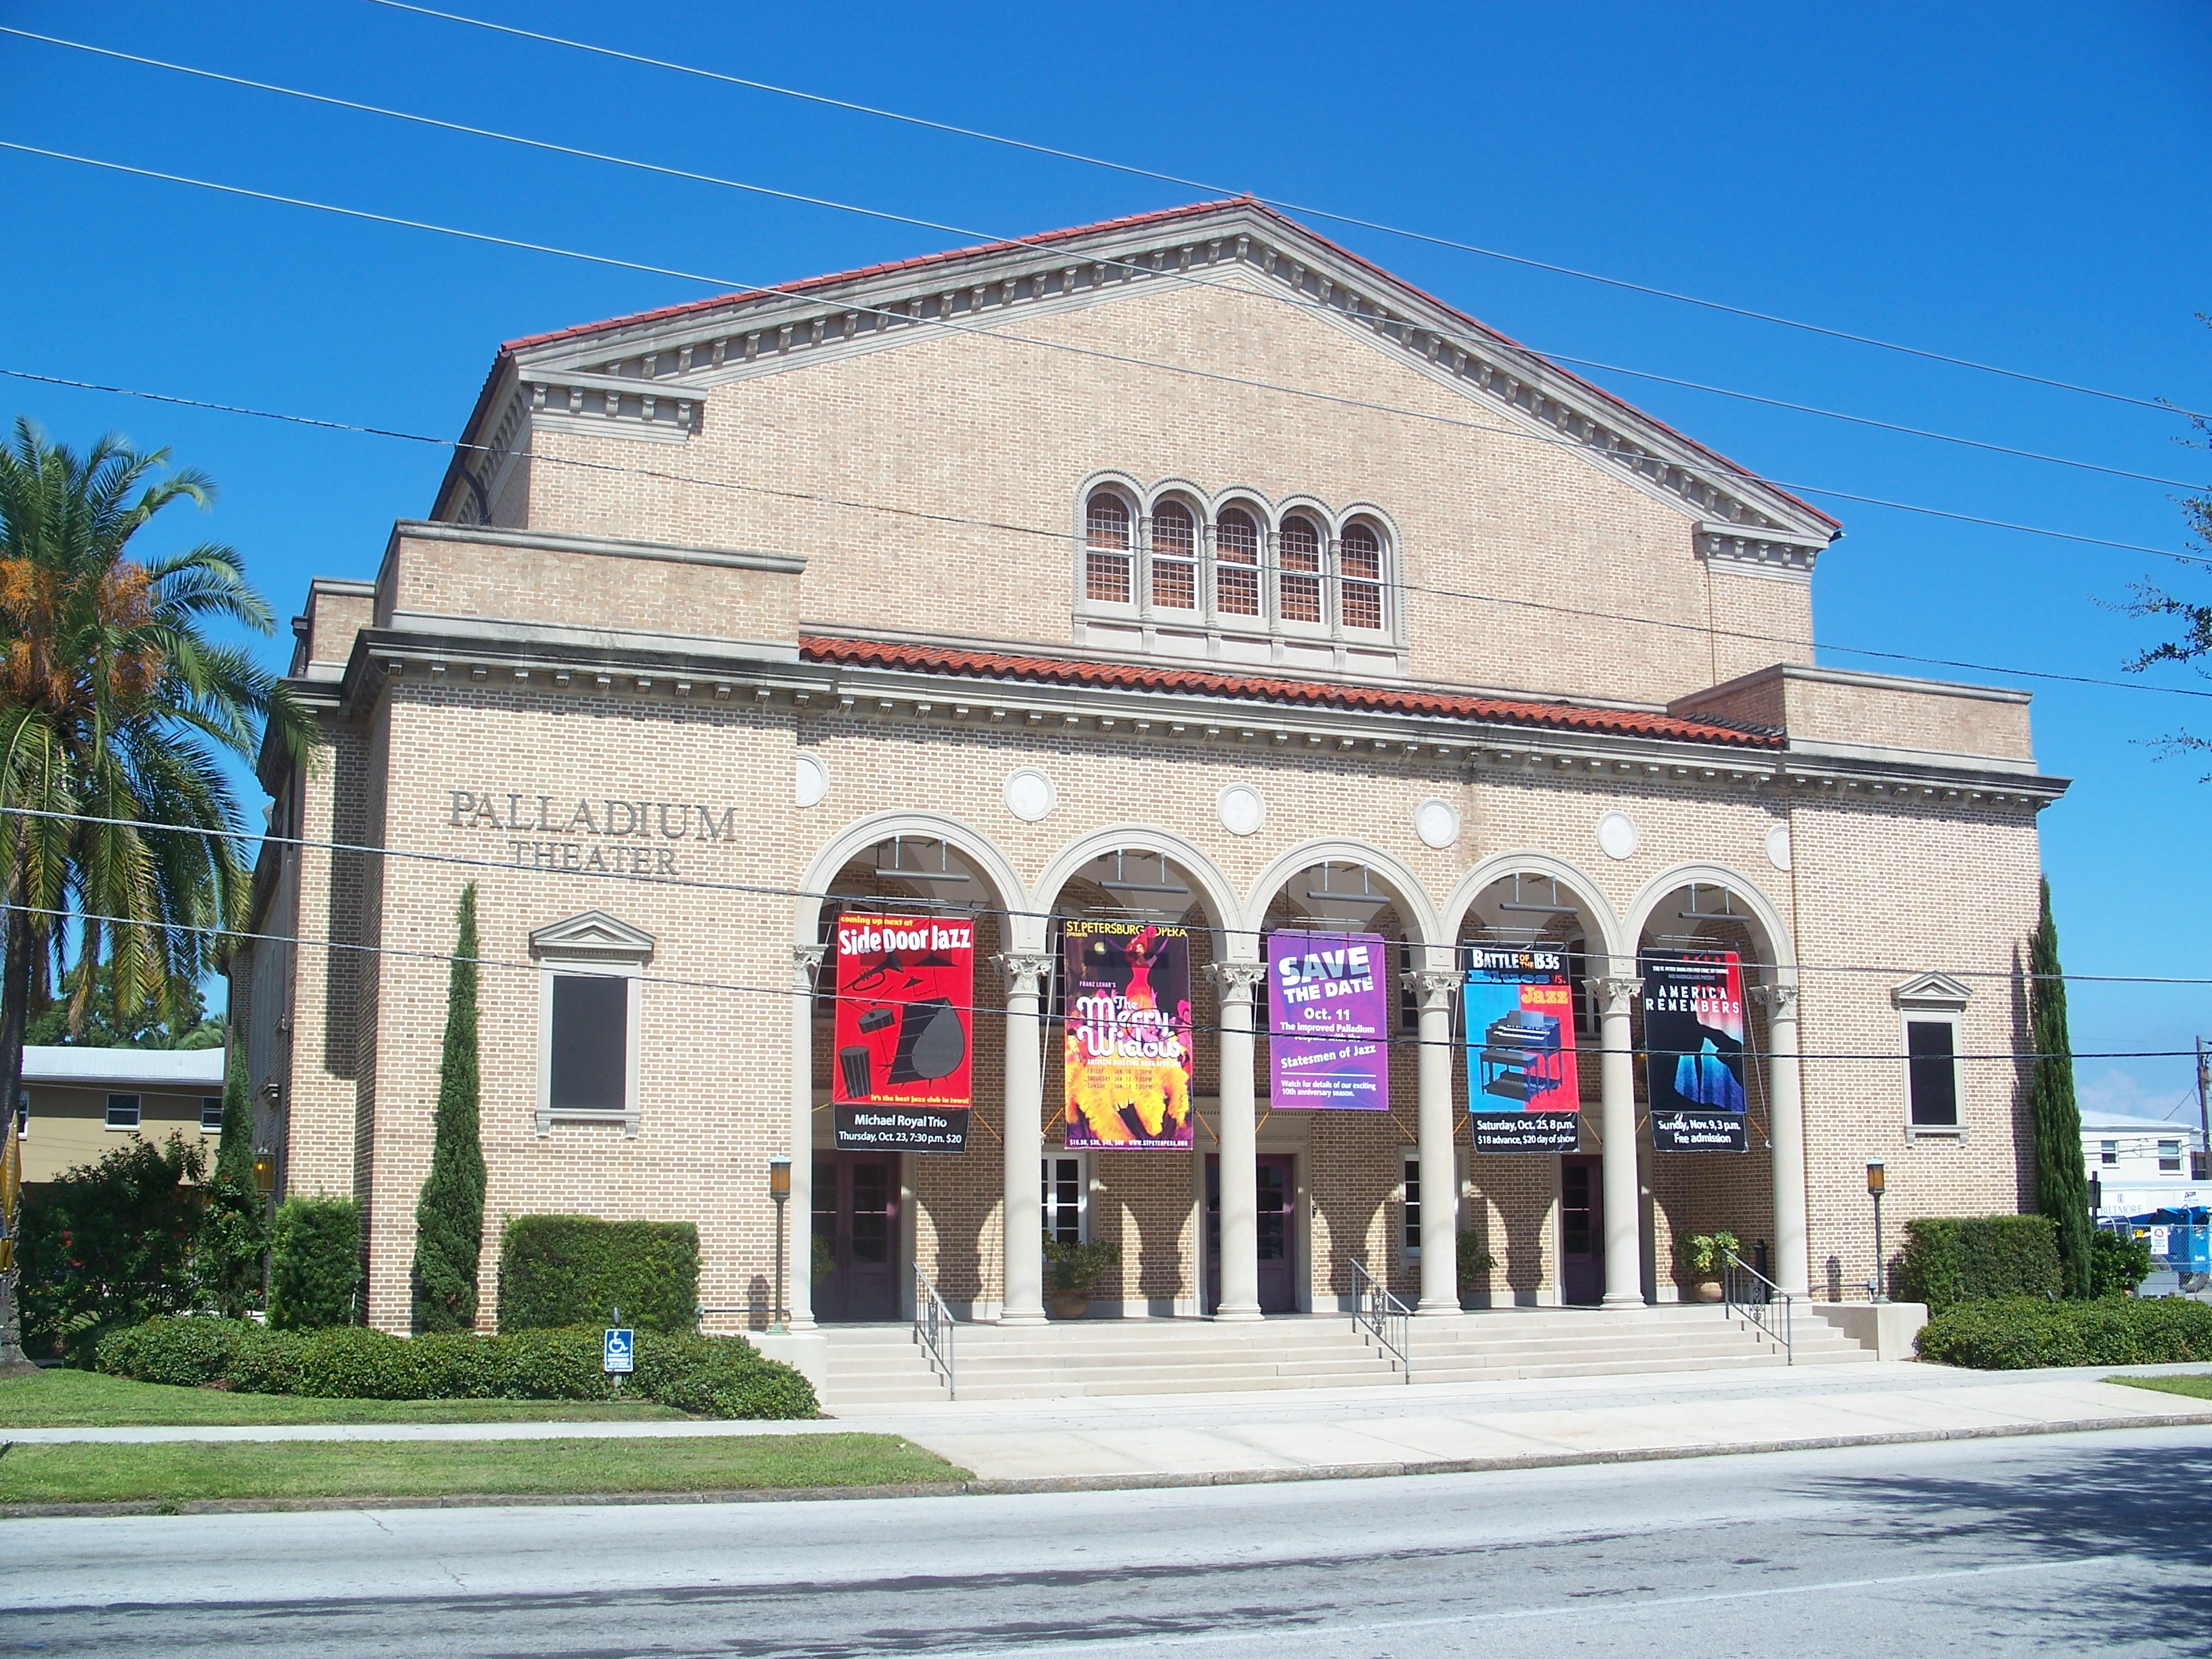 Paul Wilborn, Executive Director – Palladium Theater, St. Petersburg, FL